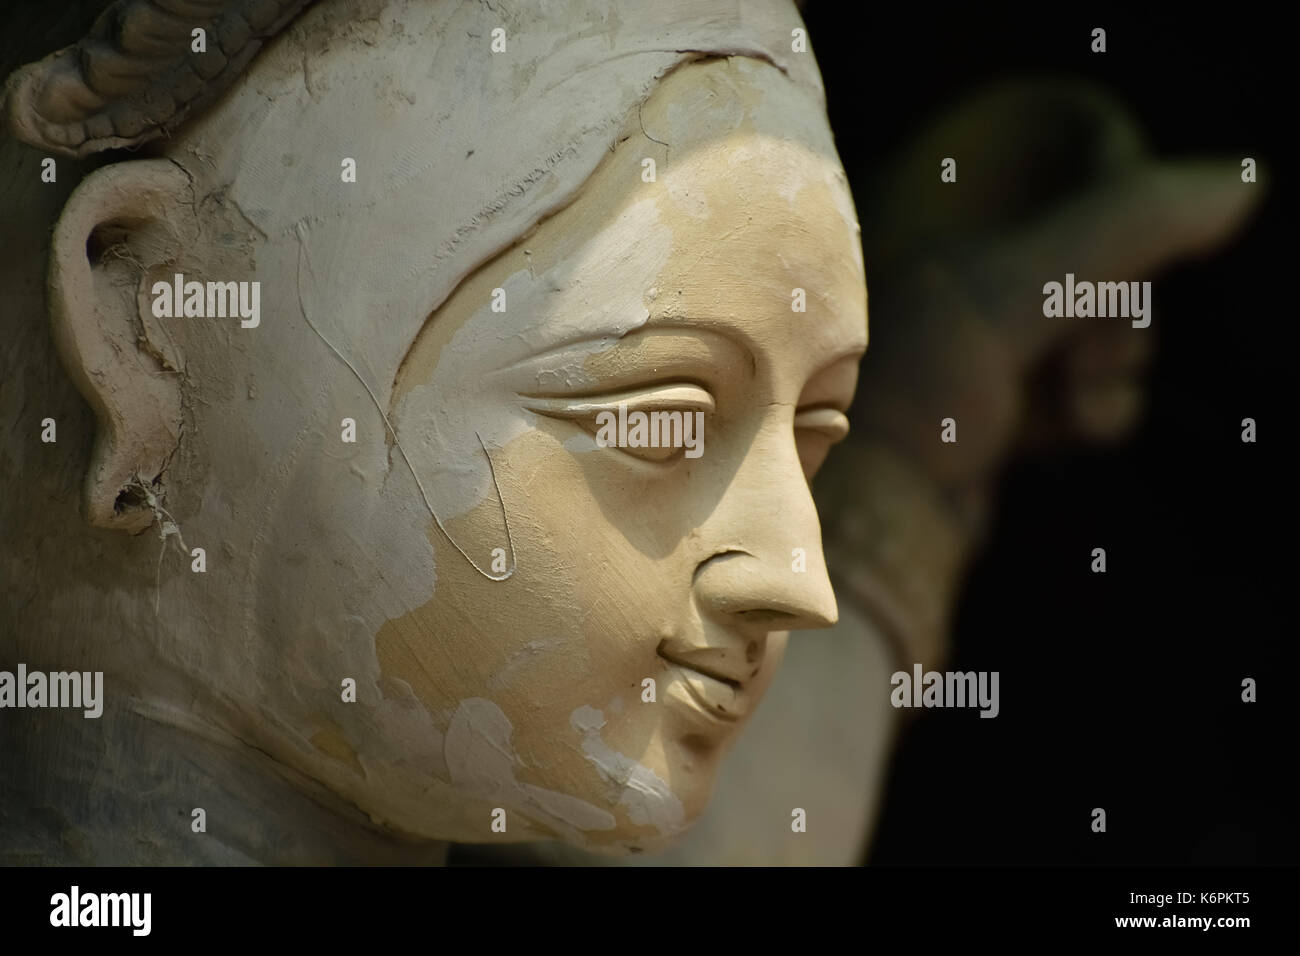 Sculpture of Hindu Goddess Durga. Goddess idols are being prepared with clay before festival. Idols being made for Durga Puja festival. Sculpture of g - Stock Image